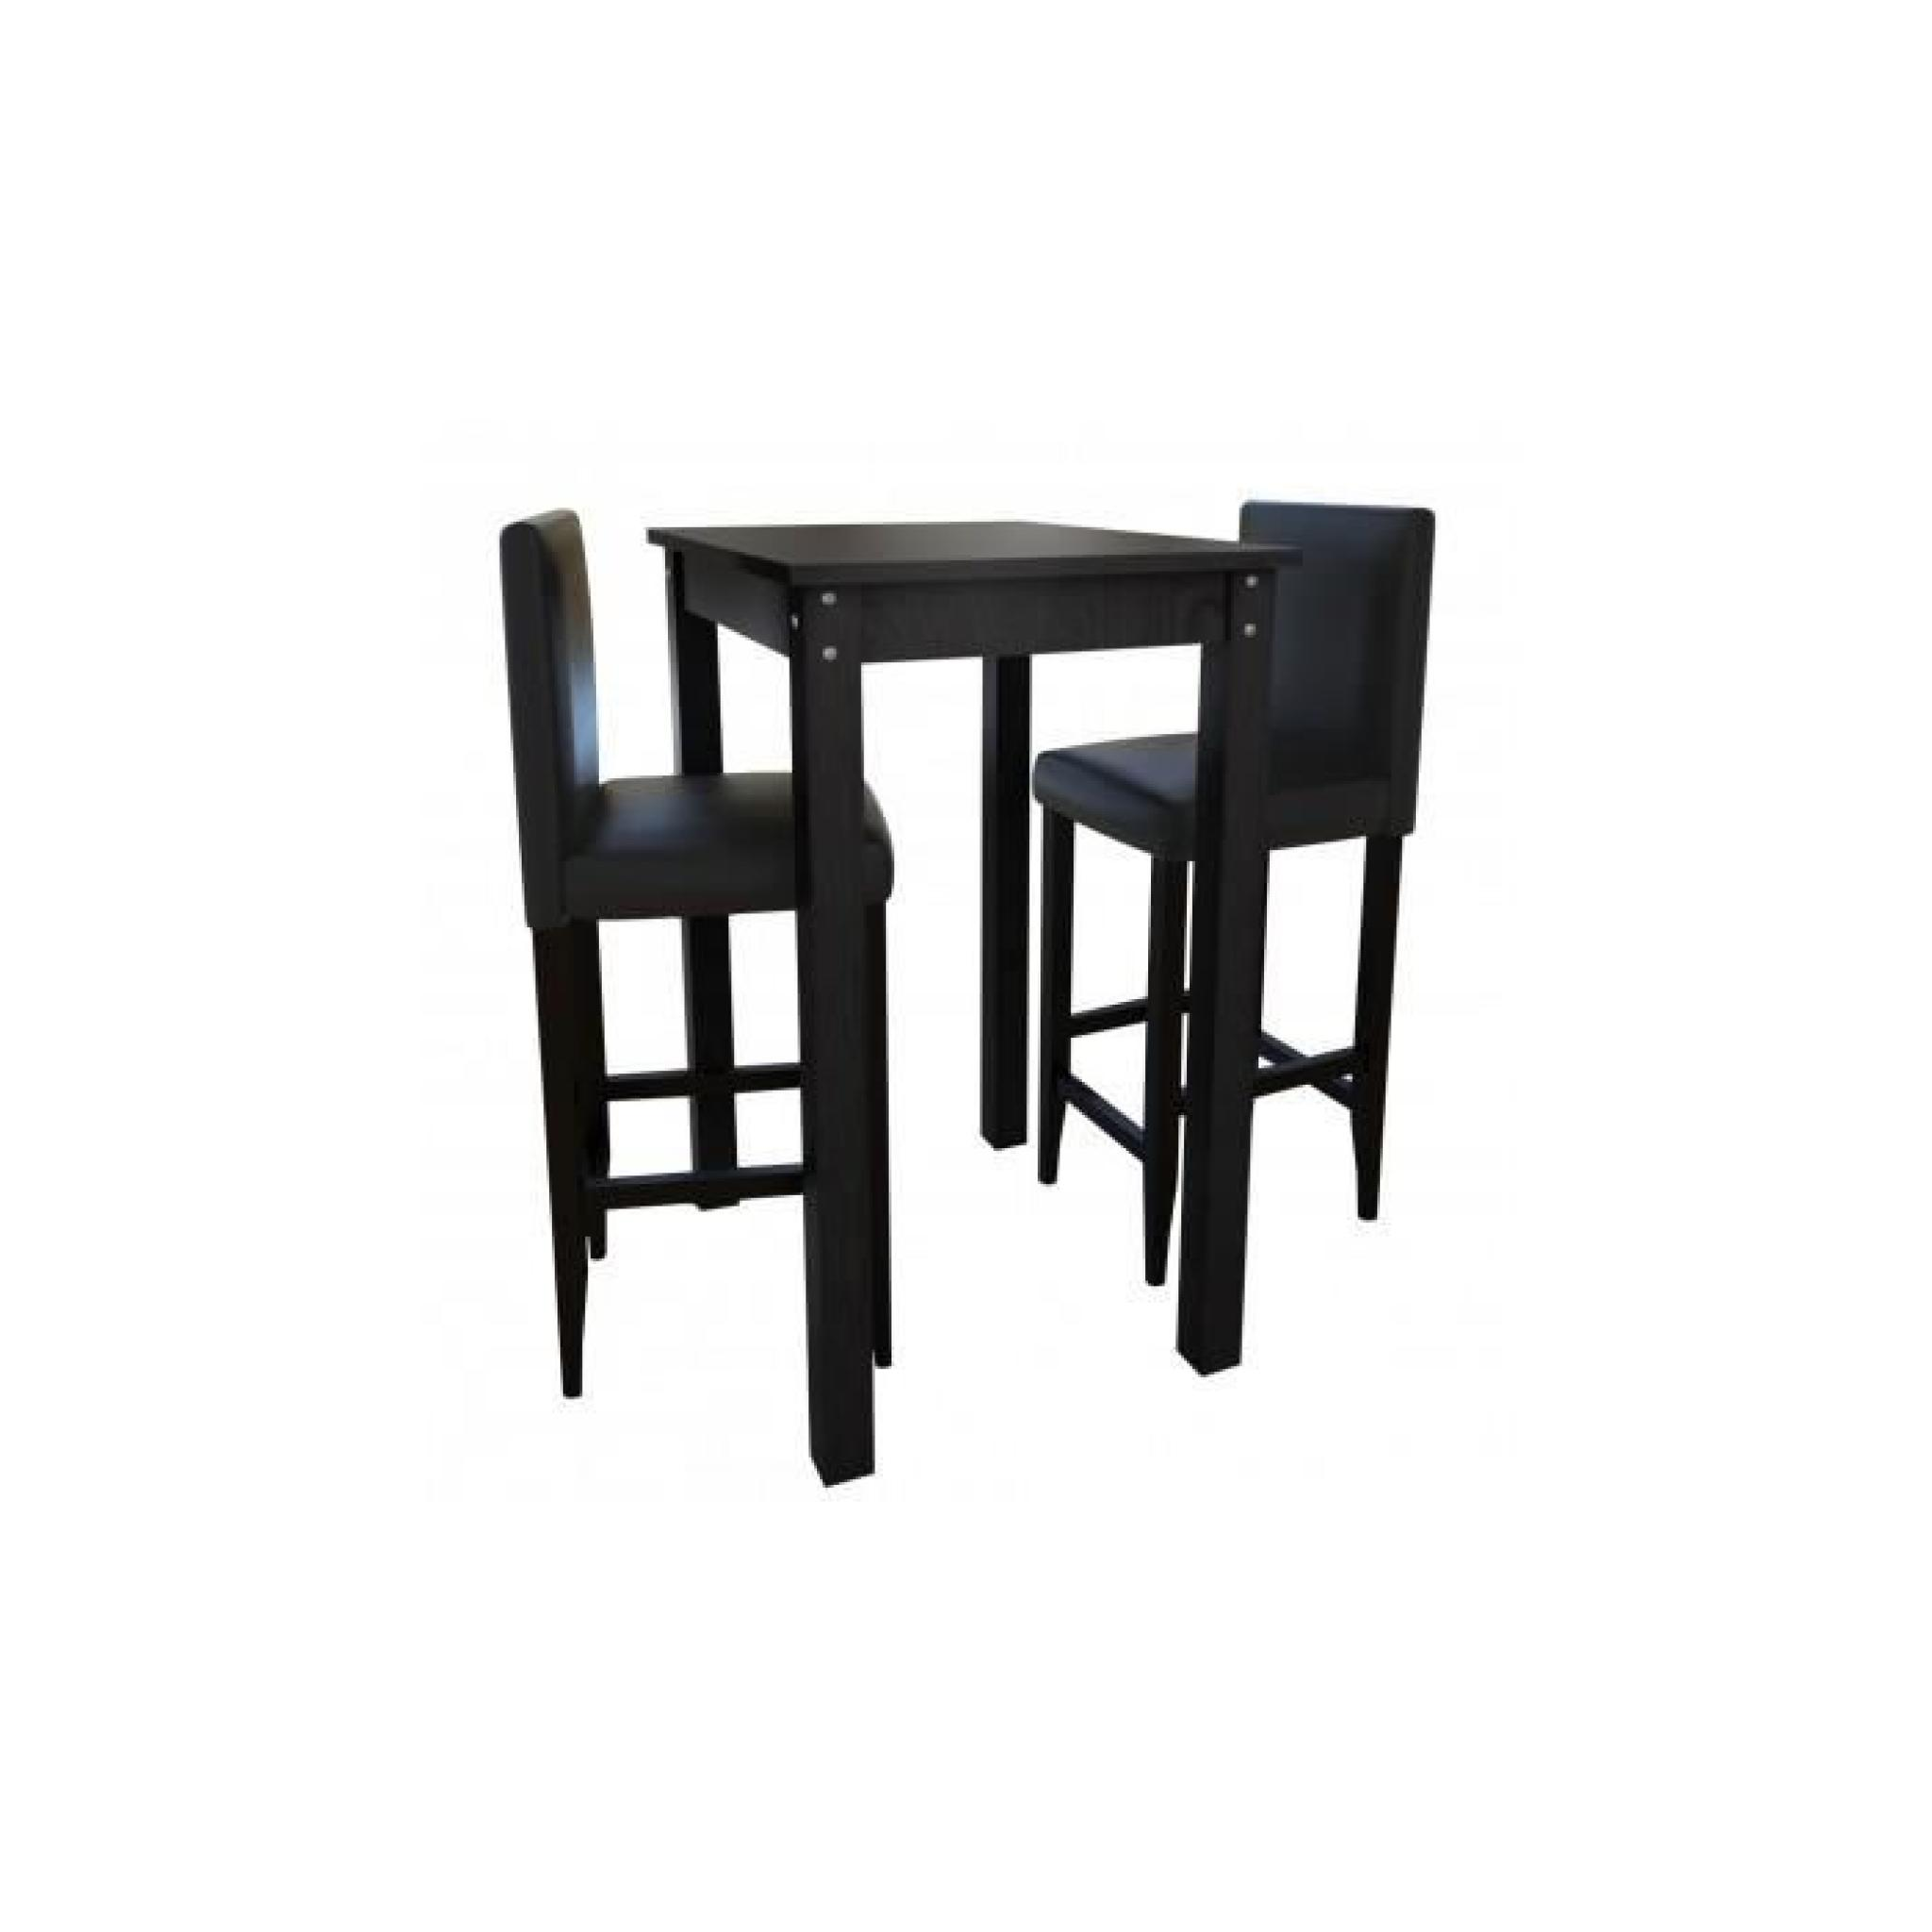 set de 1 table et 2 tabourets noir achat vente table. Black Bedroom Furniture Sets. Home Design Ideas